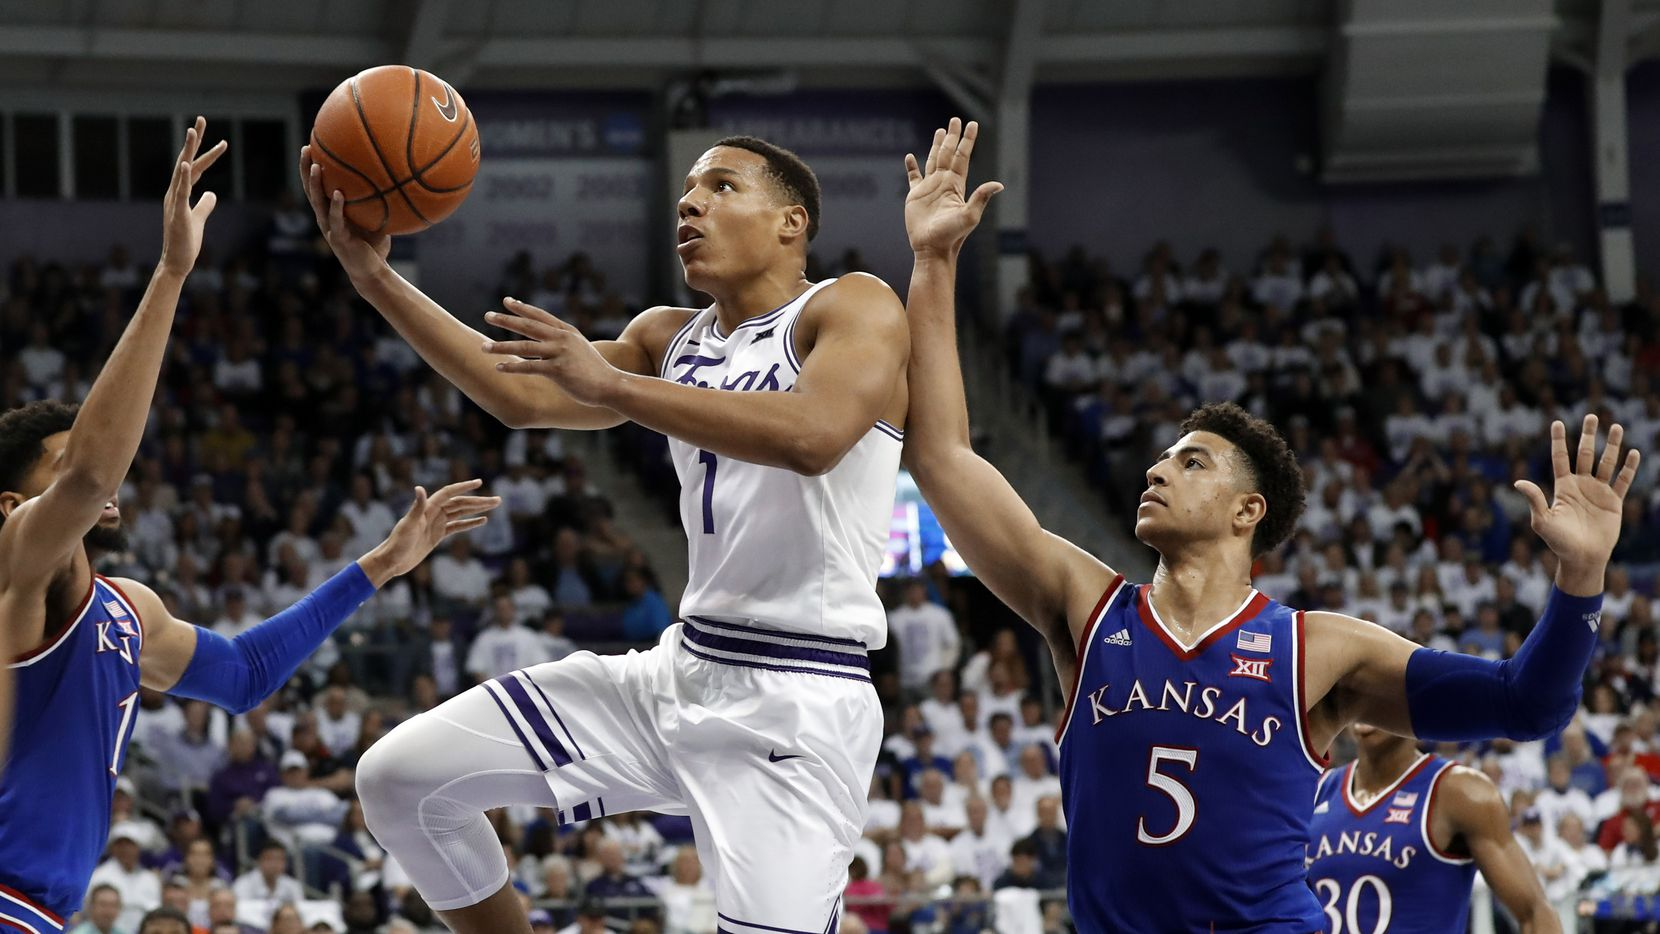 Kansas forward Dedric Lawson (1) and guard Quentin Grimes (5) defend as TCU guard Desmond Bane (1) leaps to the basket for a shot in the second half of an NCAA college basketball game in Fort Worth, Texas, Monday, Feb. 11, 2019.